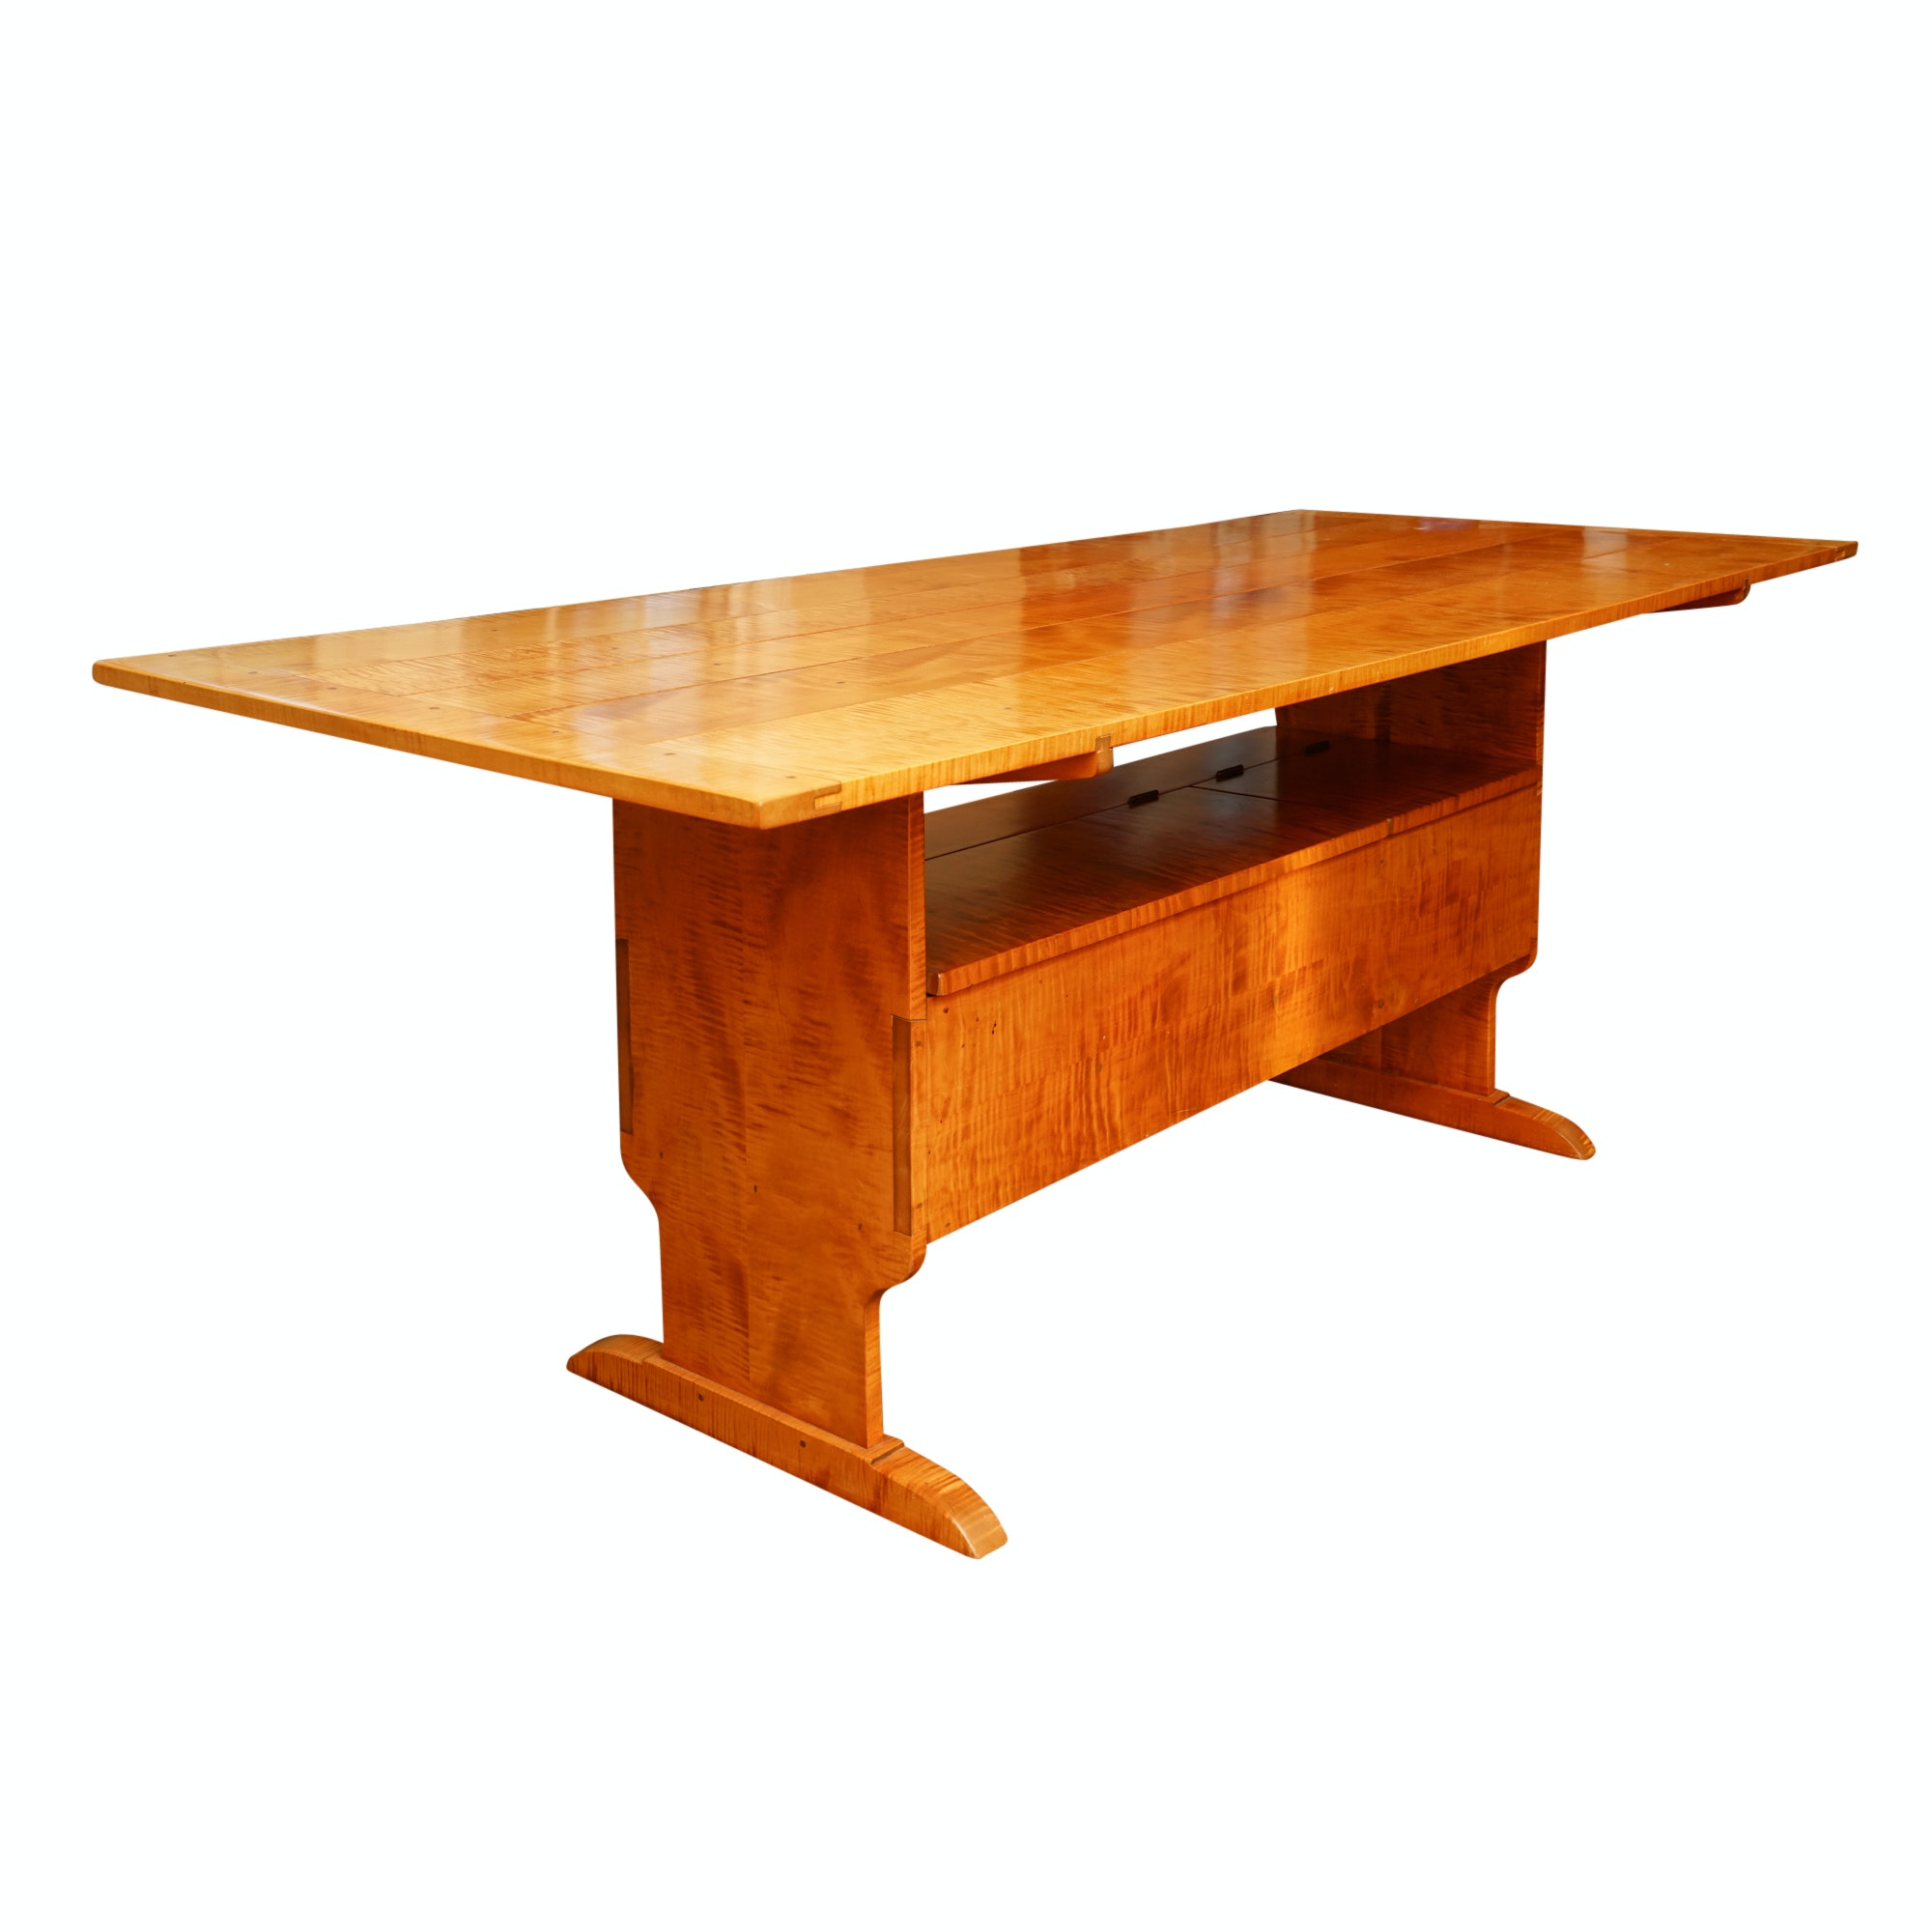 Hand-Crafted Tiger Maple Convertible Trestle Table with Storage Bench